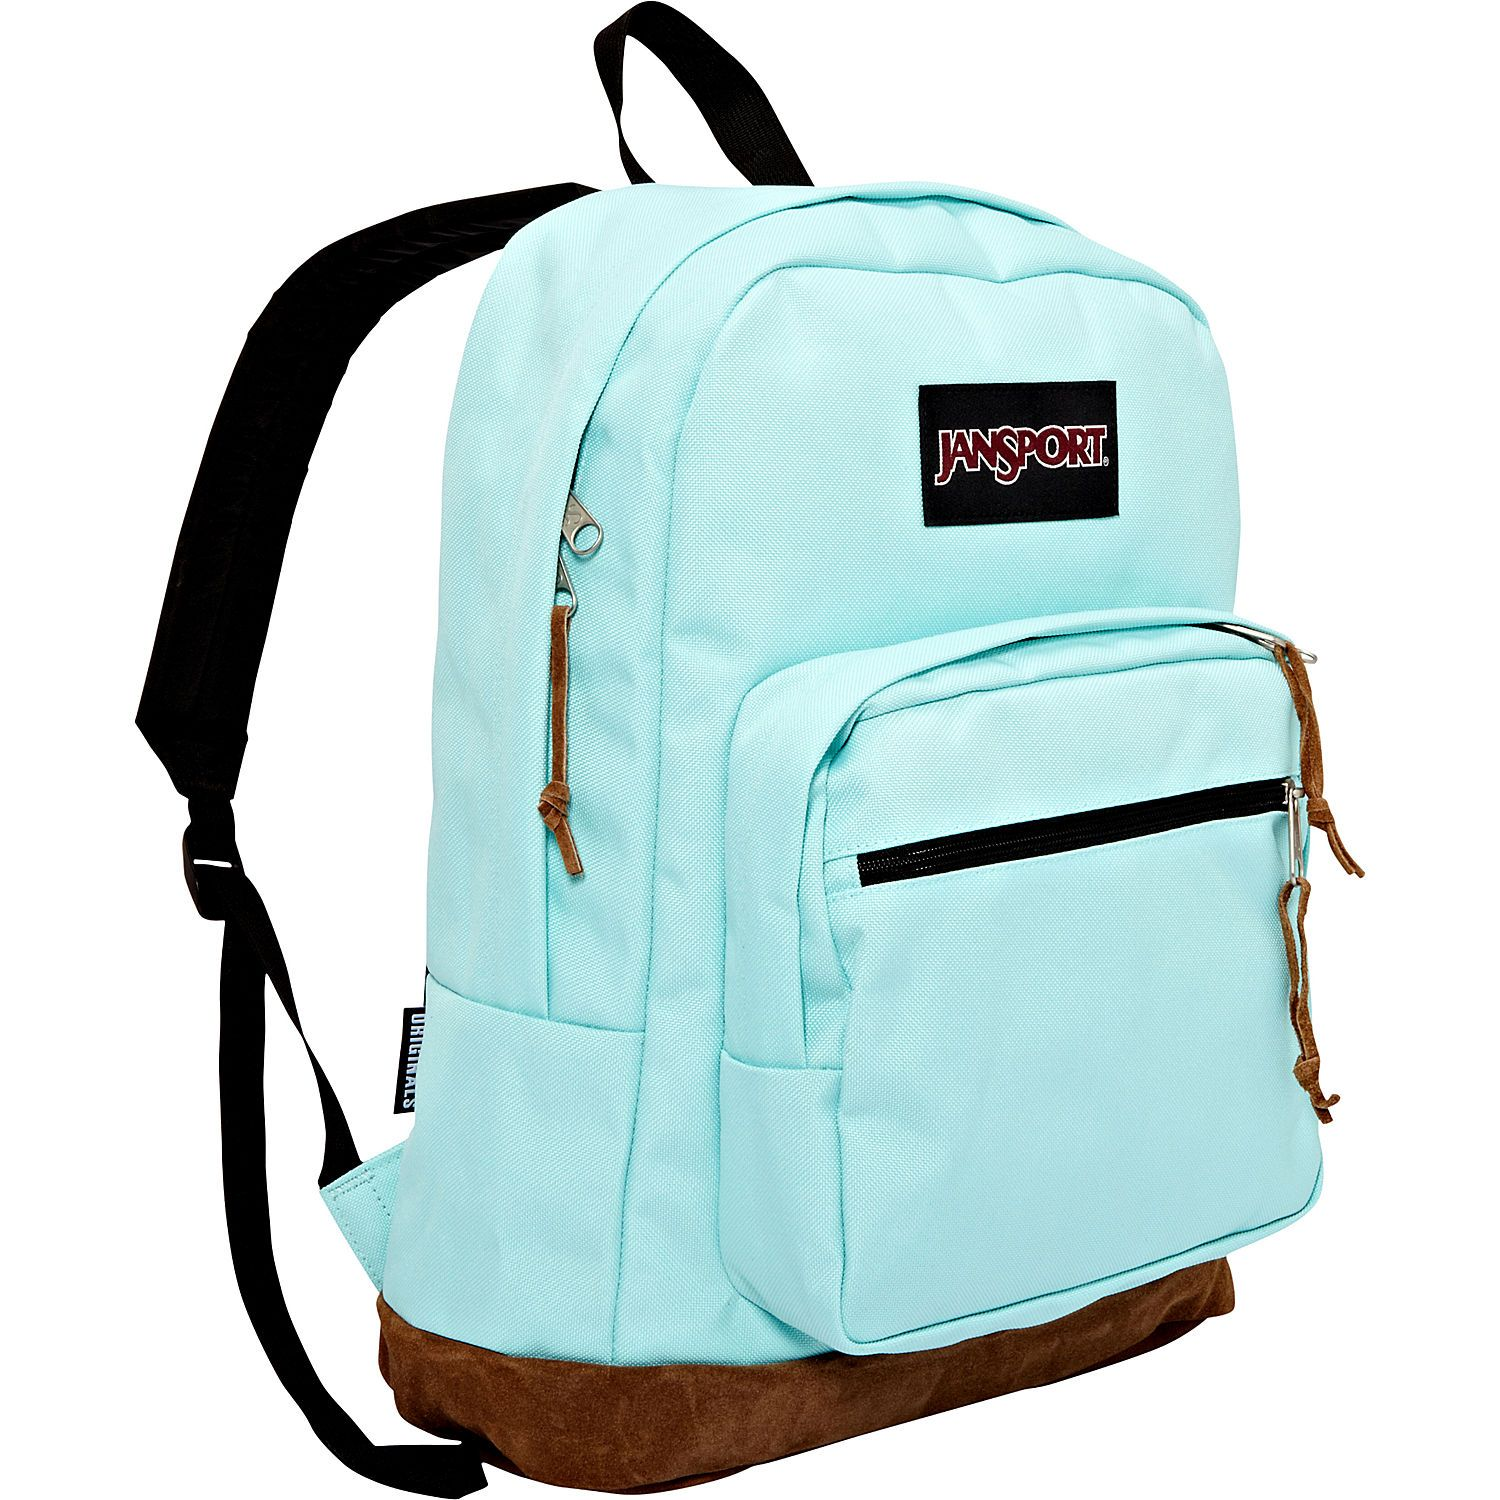 JanSport Right Pack Backpack - FREE SHIPPING - eBags.com | make it ...